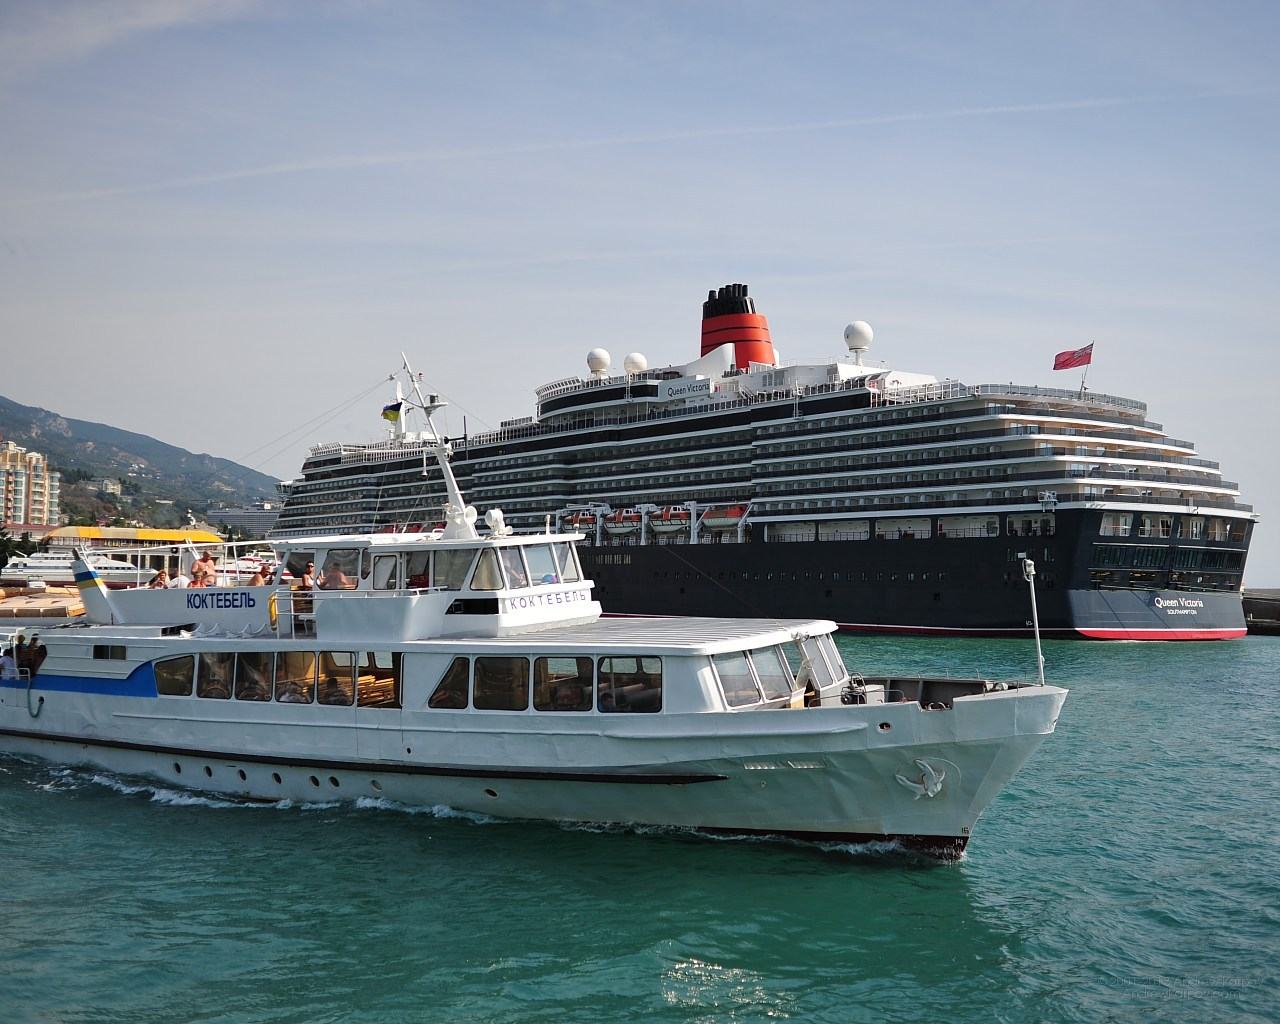 image wallpaper 1280 1024 pictures wallpaper A cruise ship free 1280x1024